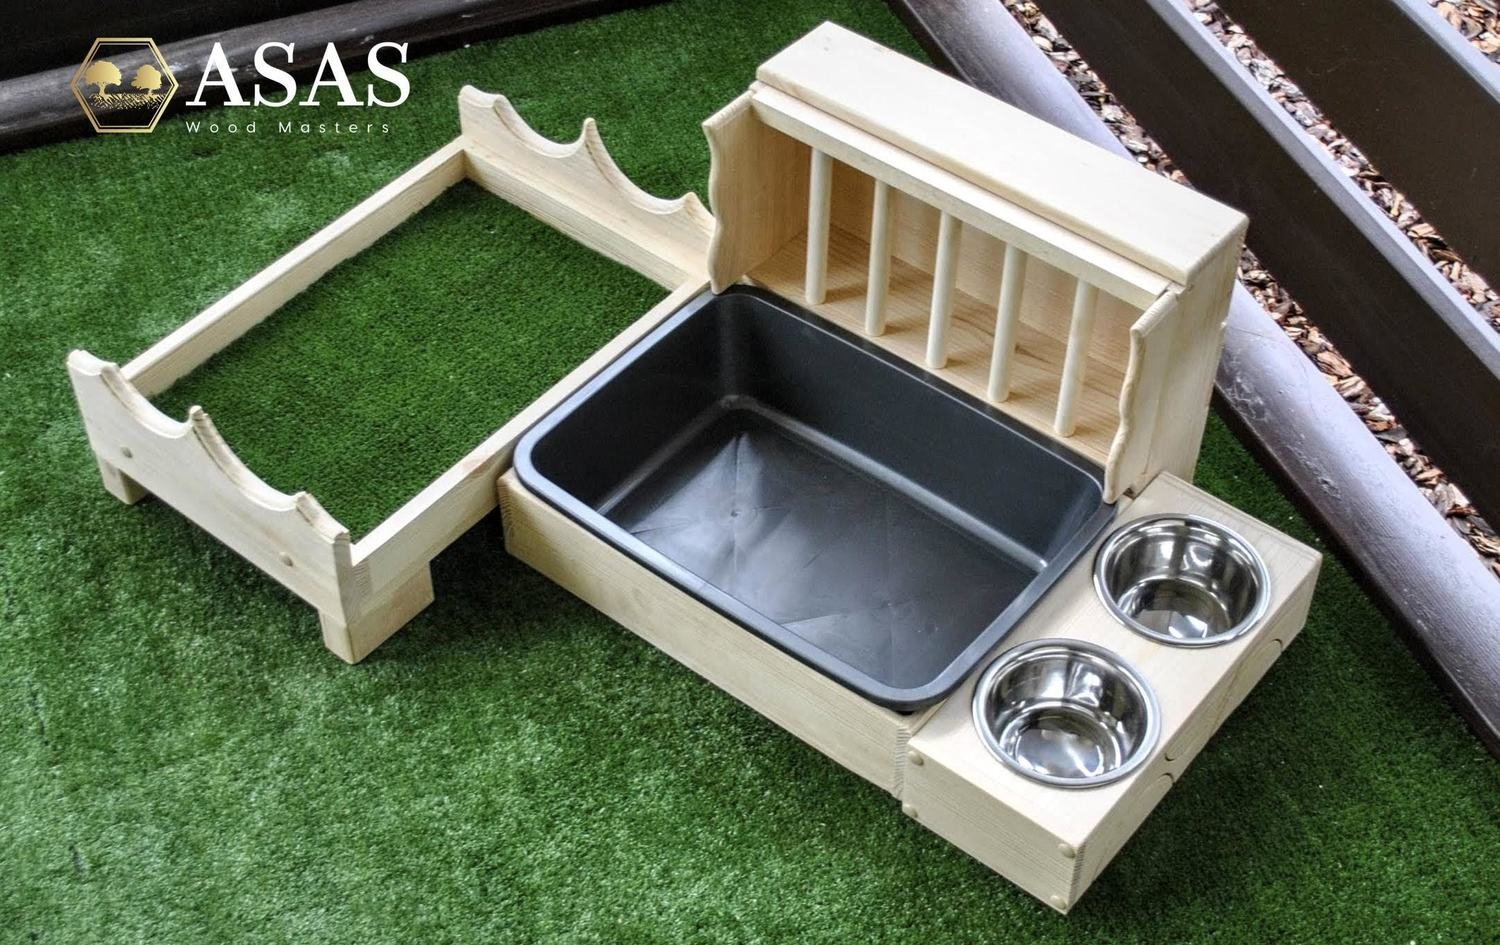 Bunny Rabbit furniture set Hay Feeder With Litter Box, 2 x Food bowls